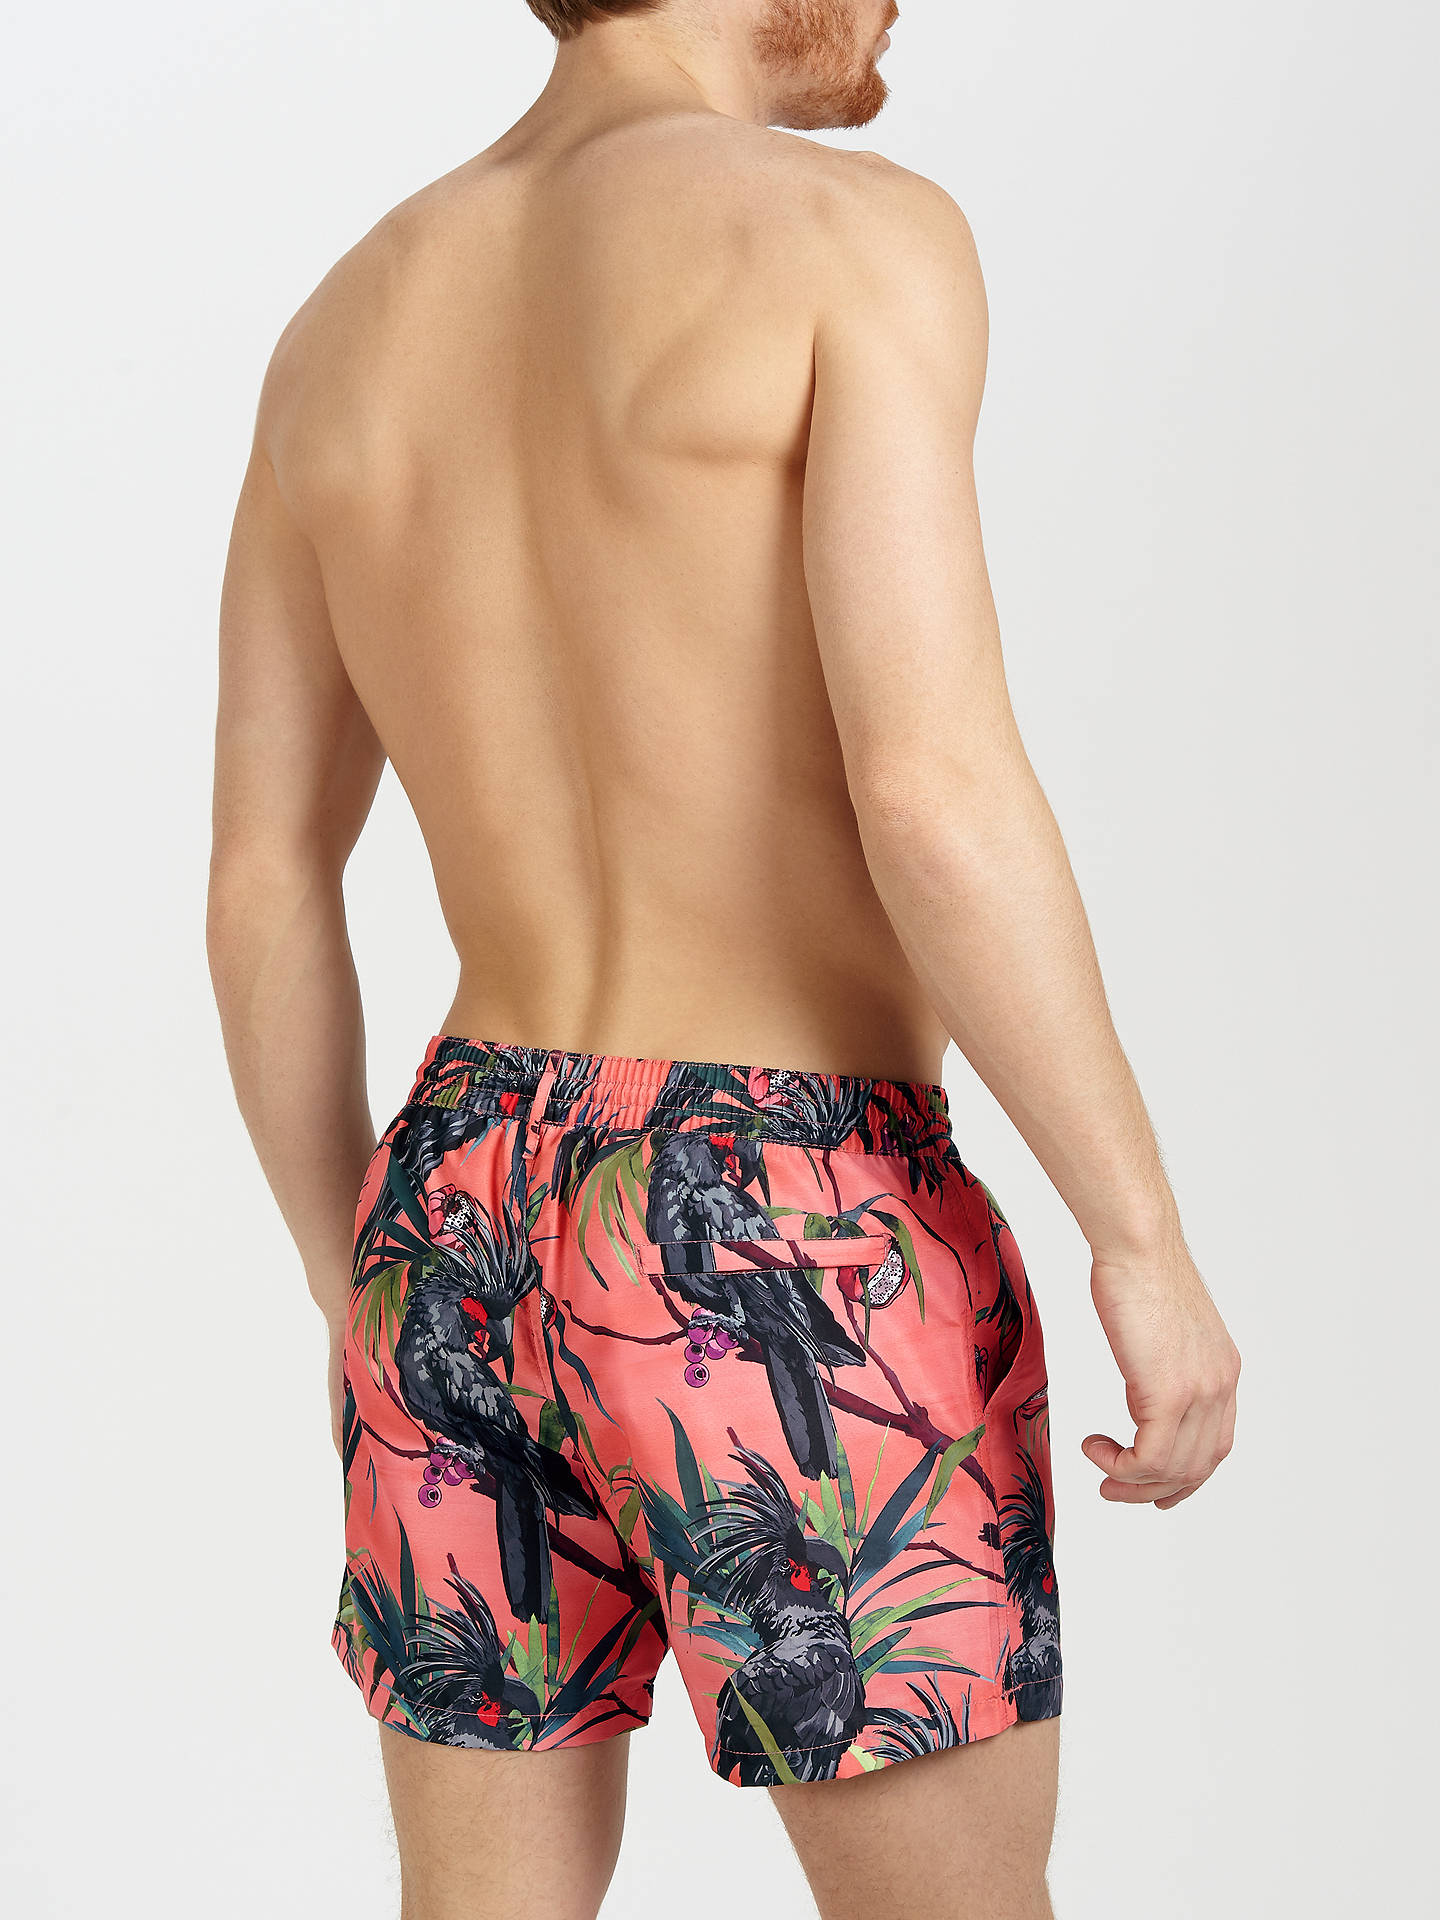 fd17a4f396548 ... Buy Paul Smith Cockatoo Print Swim Shorts, Pink, S Online at  johnlewis.com ...